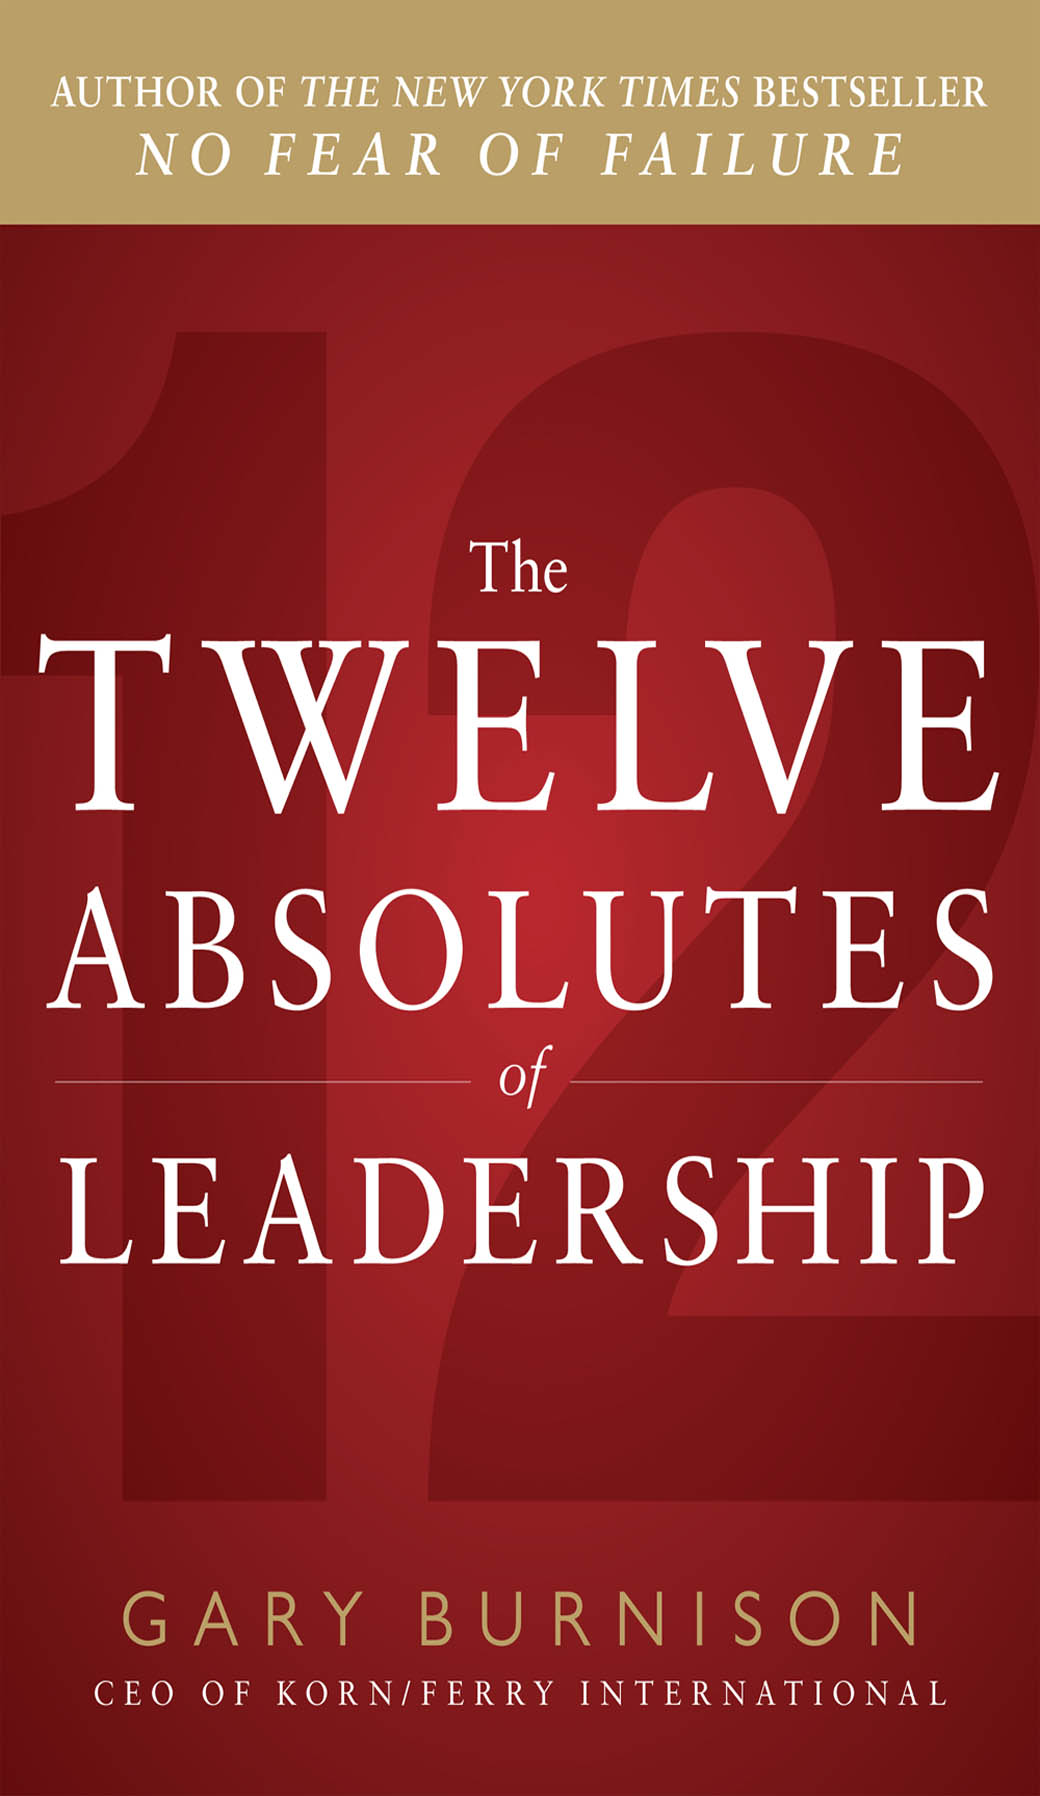 Download Ebook The Twelve Absolutes of Leadership by Gary Burnison Pdf